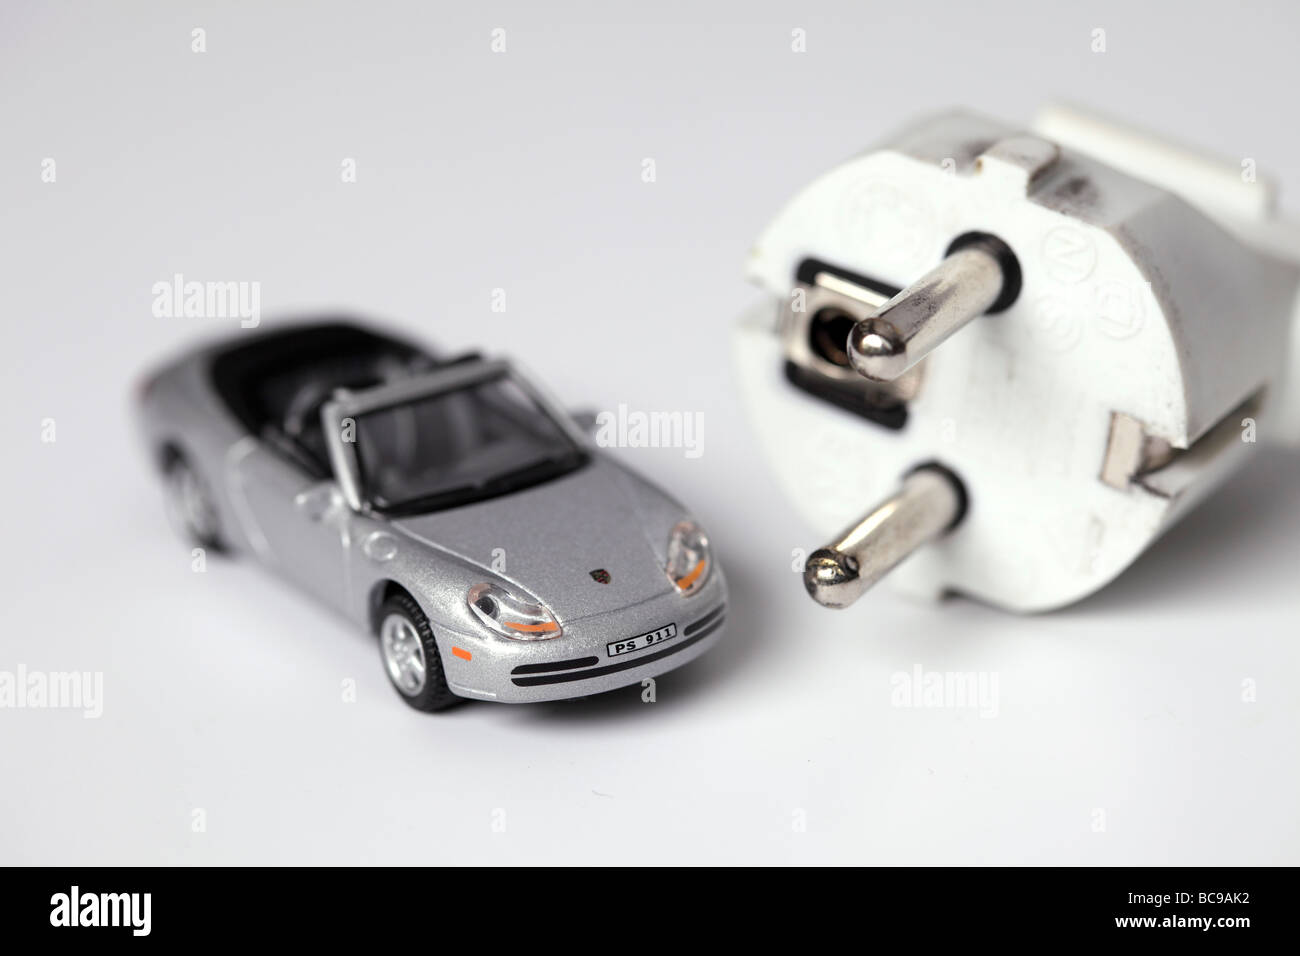 Car model with plug - Stock Image